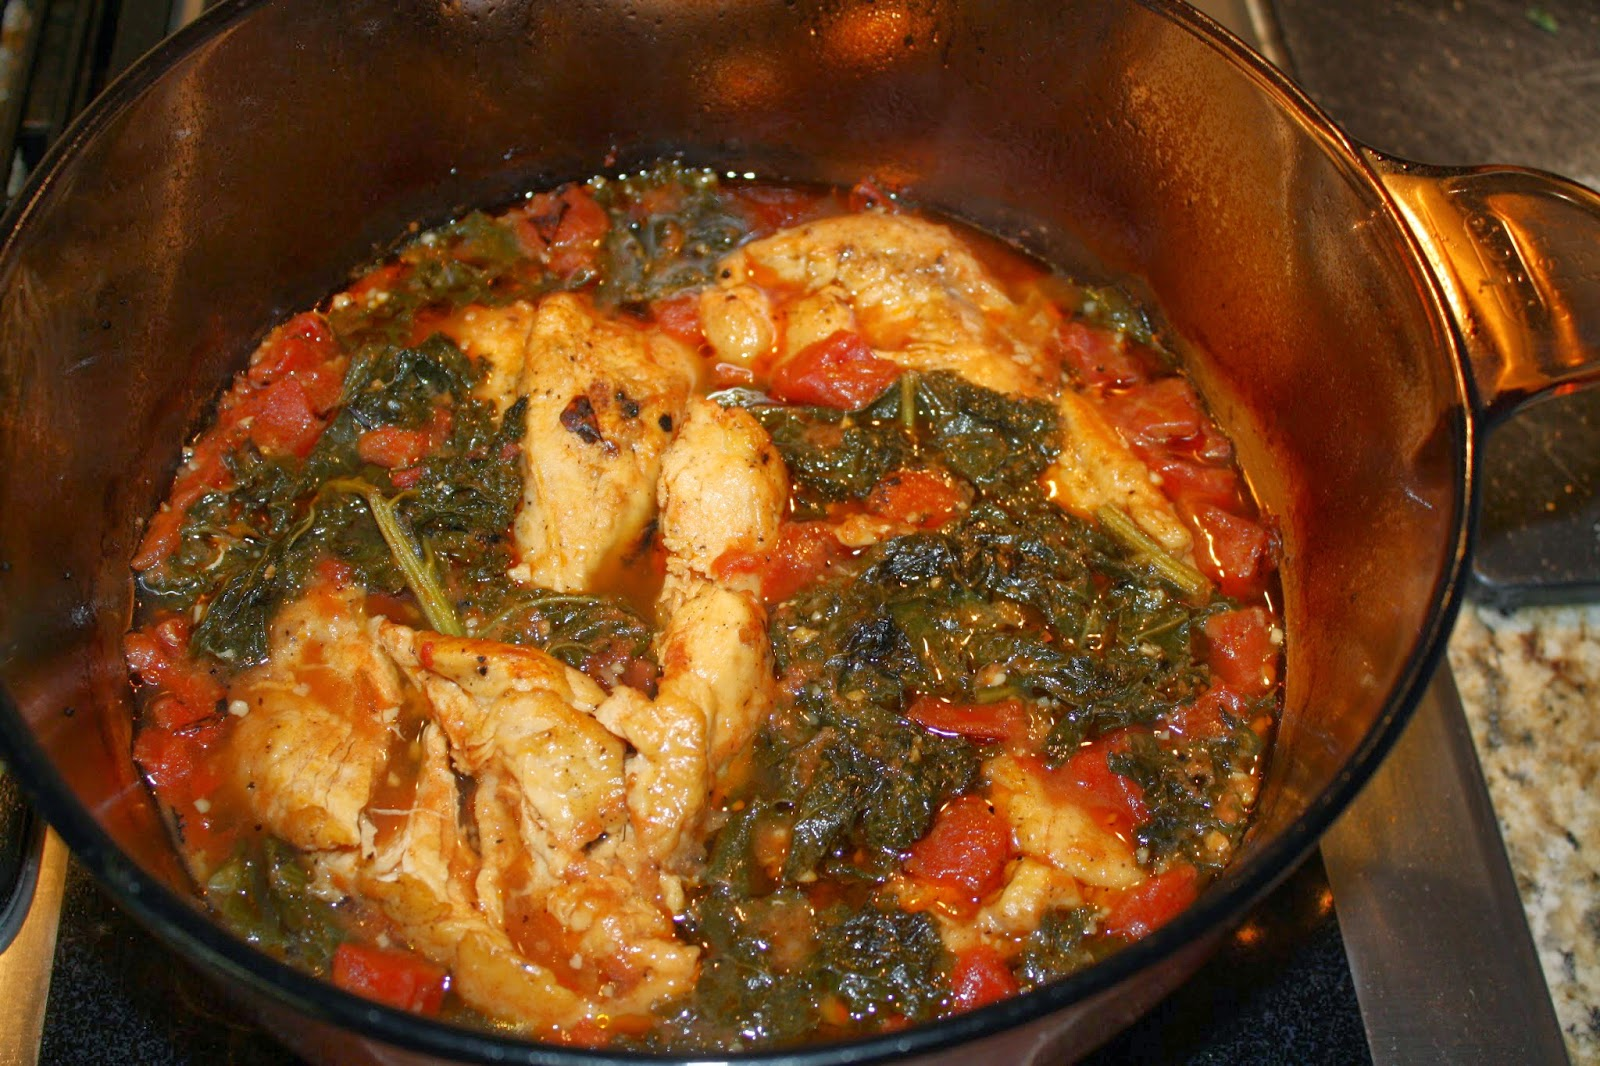 Braised Chicken with Tomatoes and Kale - Wellness Witness